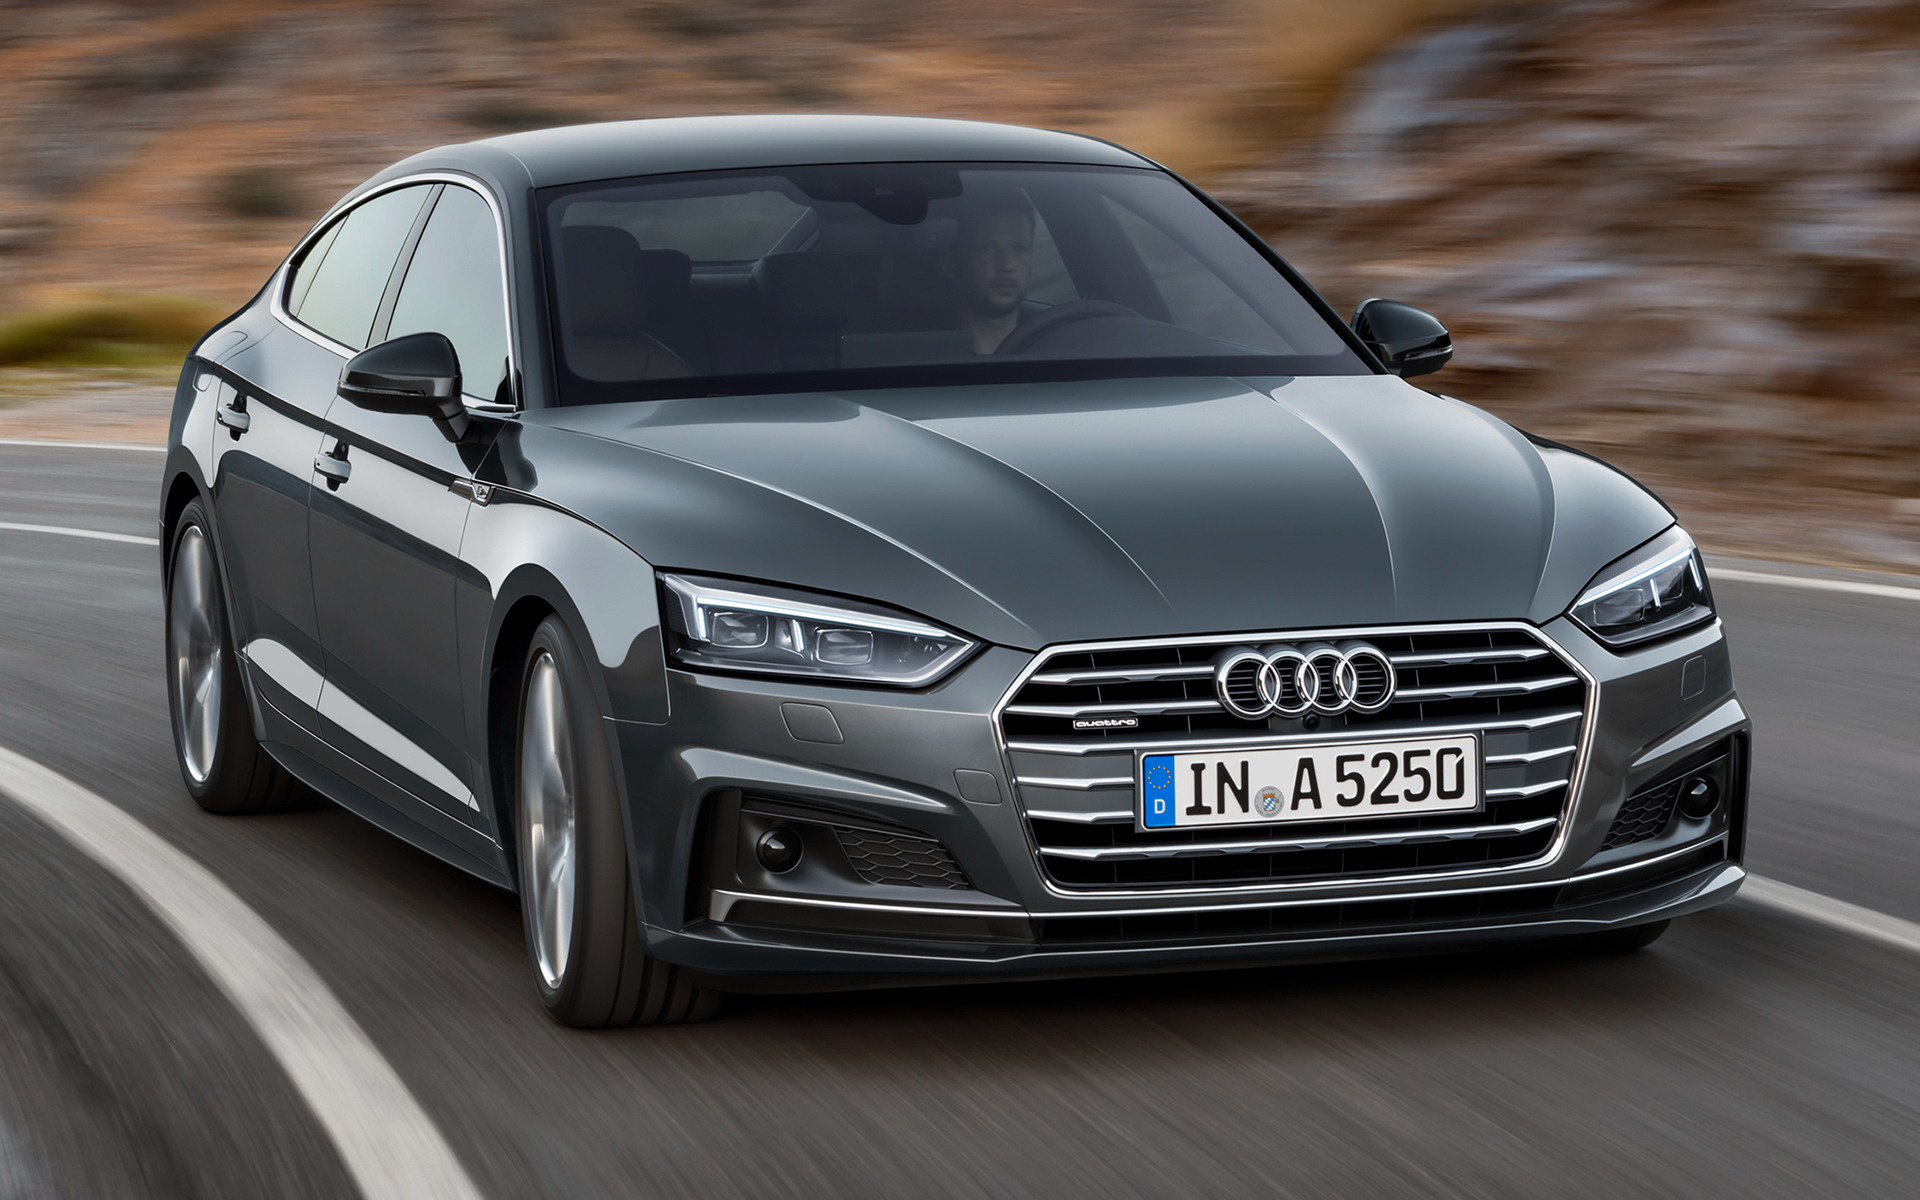 2016 Audi A5 Sportback S Line Wallpapers And Hd Images